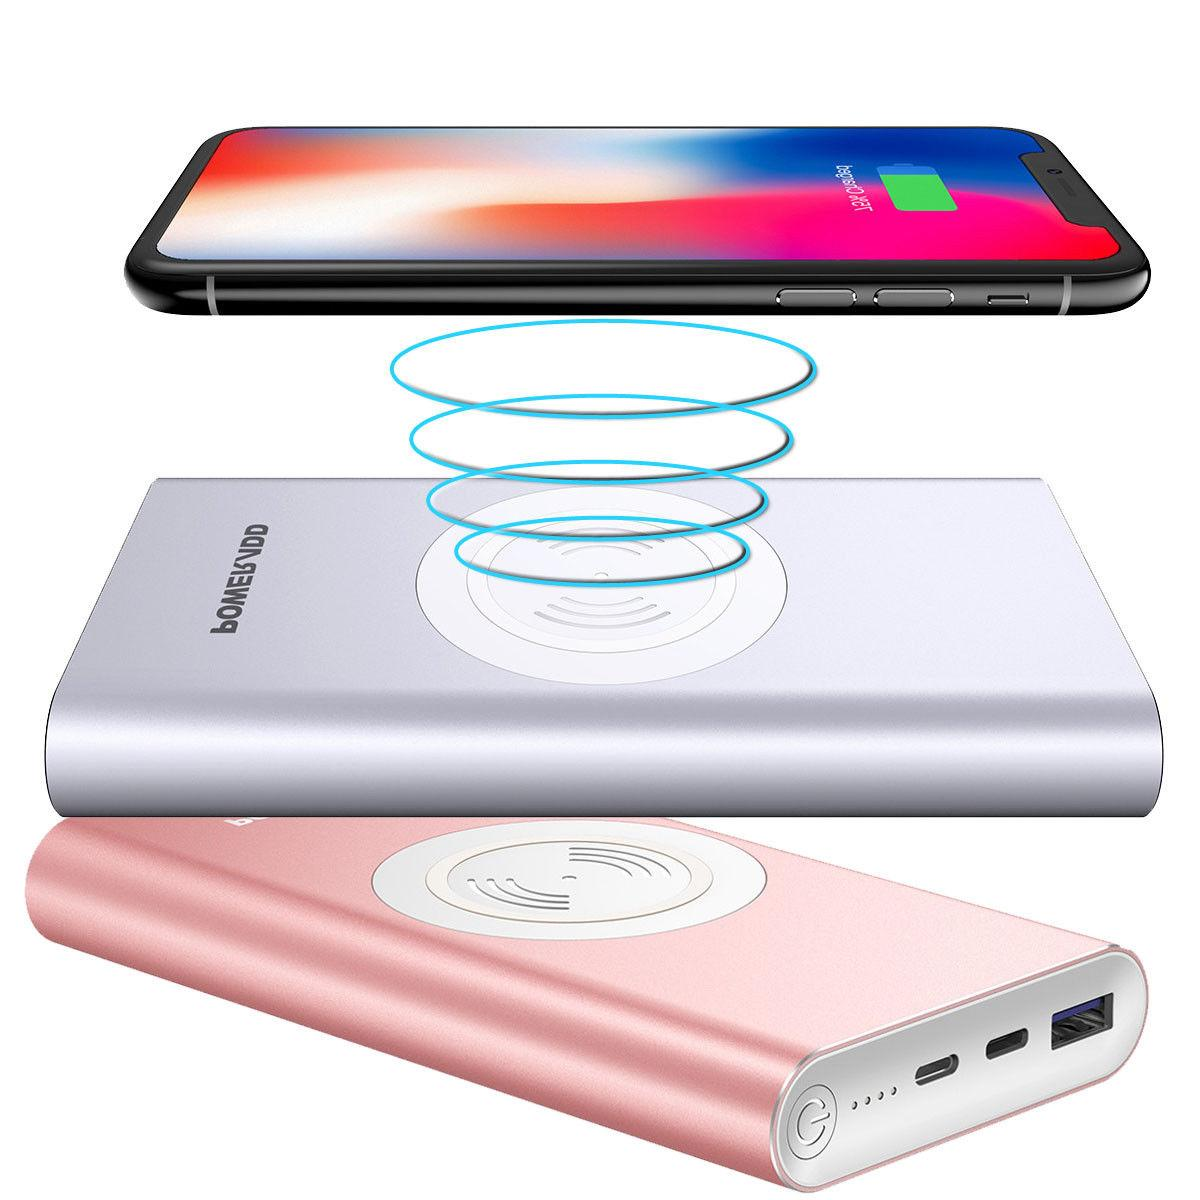 Poweradd 10000mAh 3 in 1 Power Bank Charger iPhone